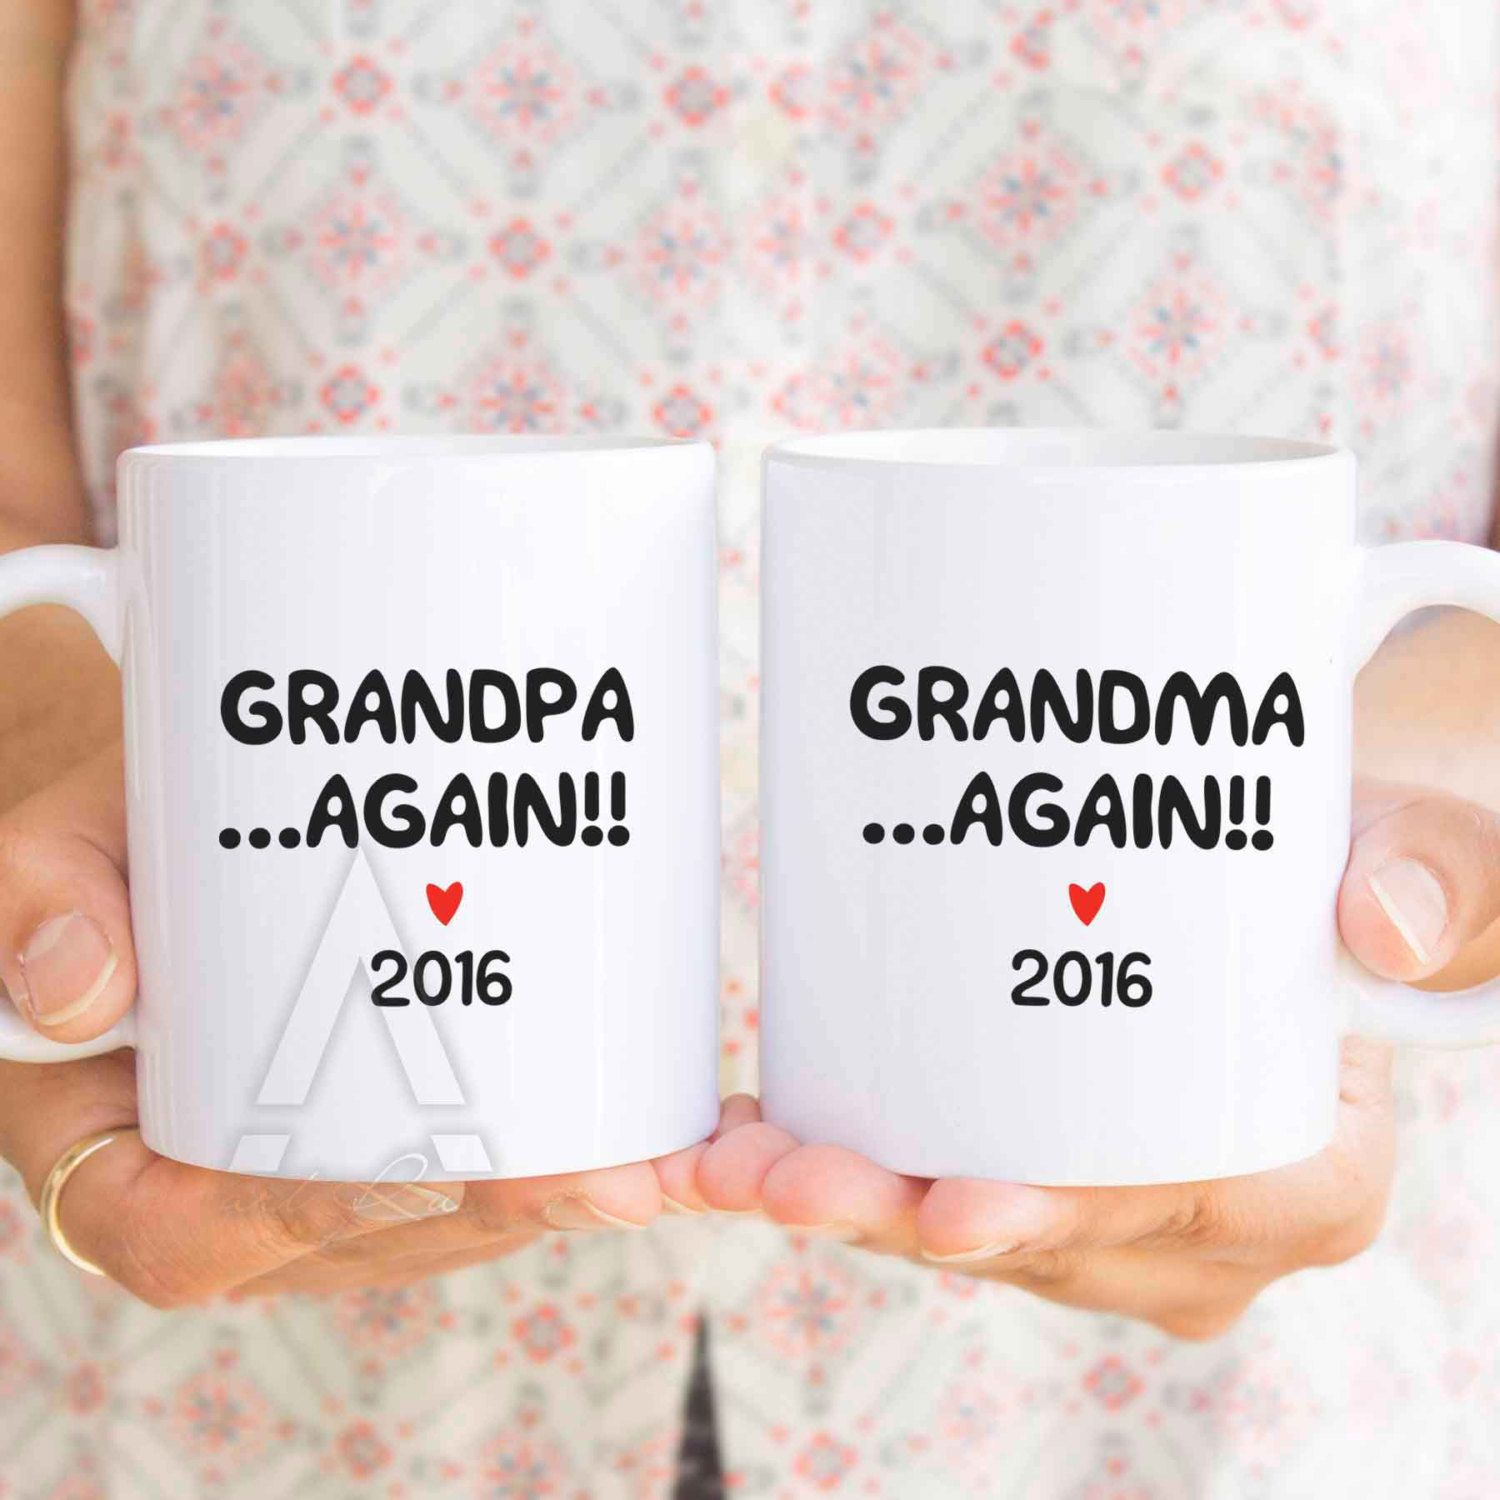 Grandma Again, New Grandma Or New Grandpa Again Mug, Gifts